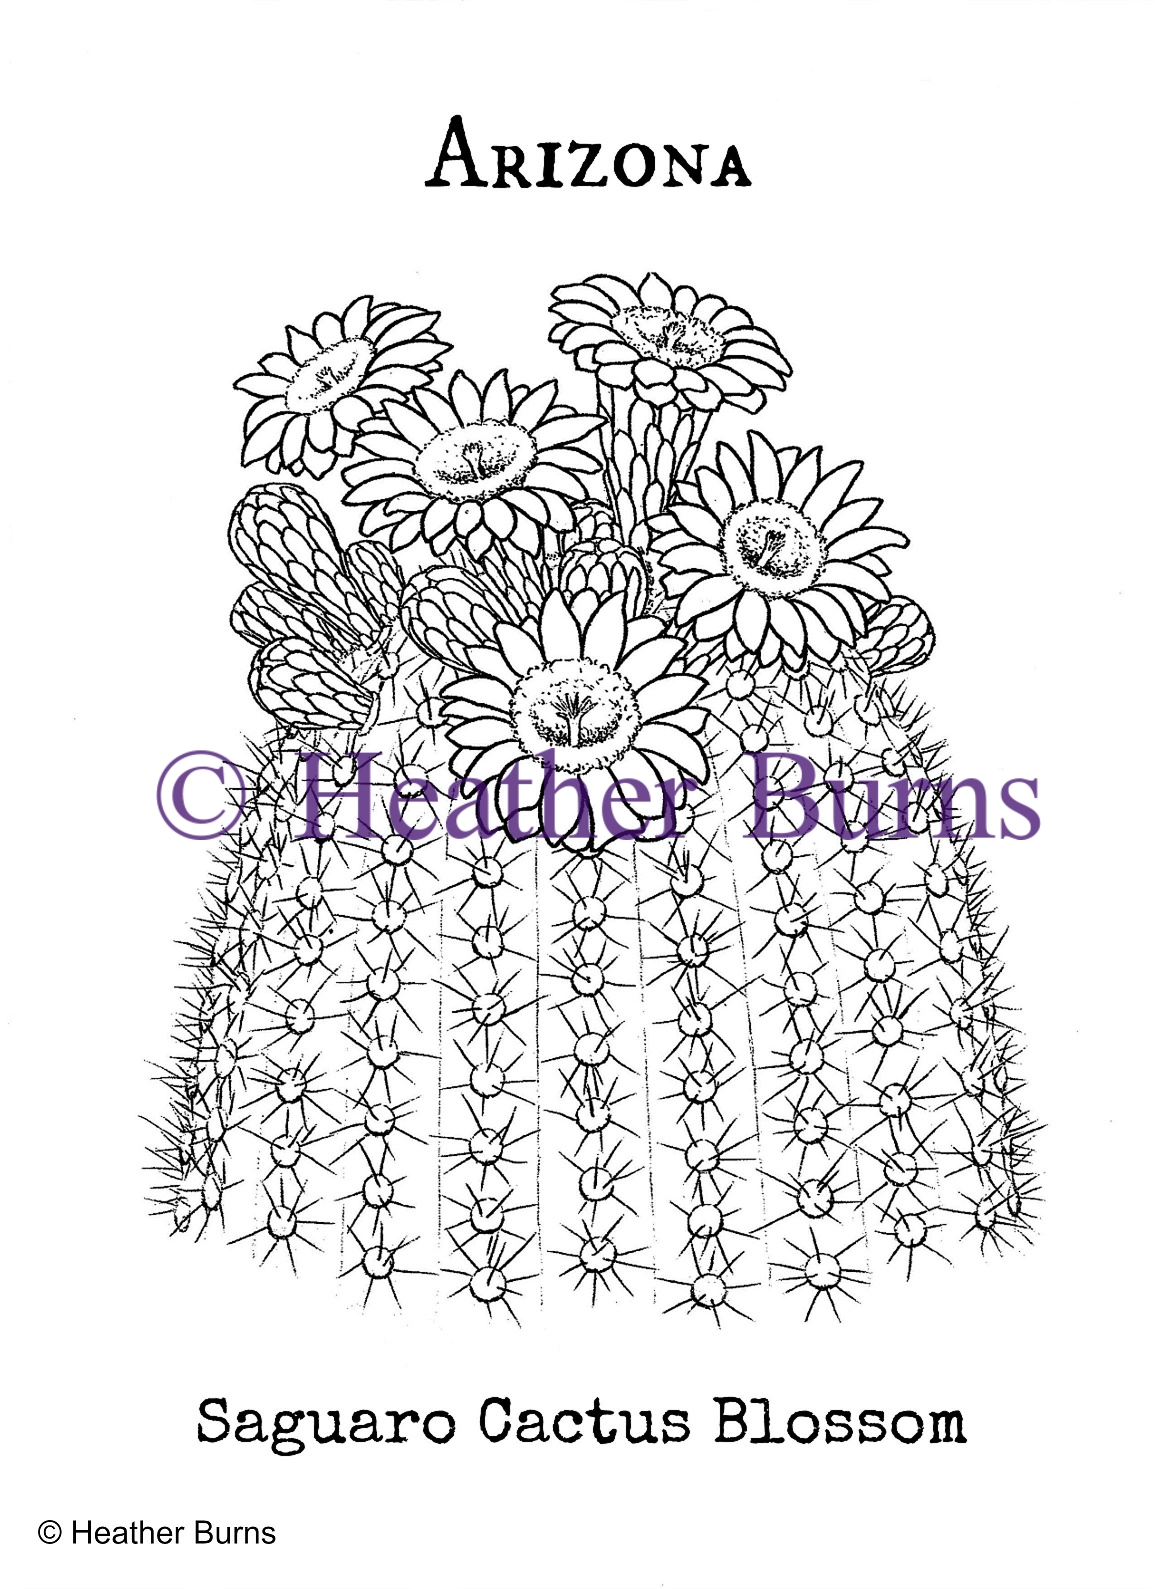 State Flower Coloring Book: Arizona Saguaro Cactus Blossom Coloring Page